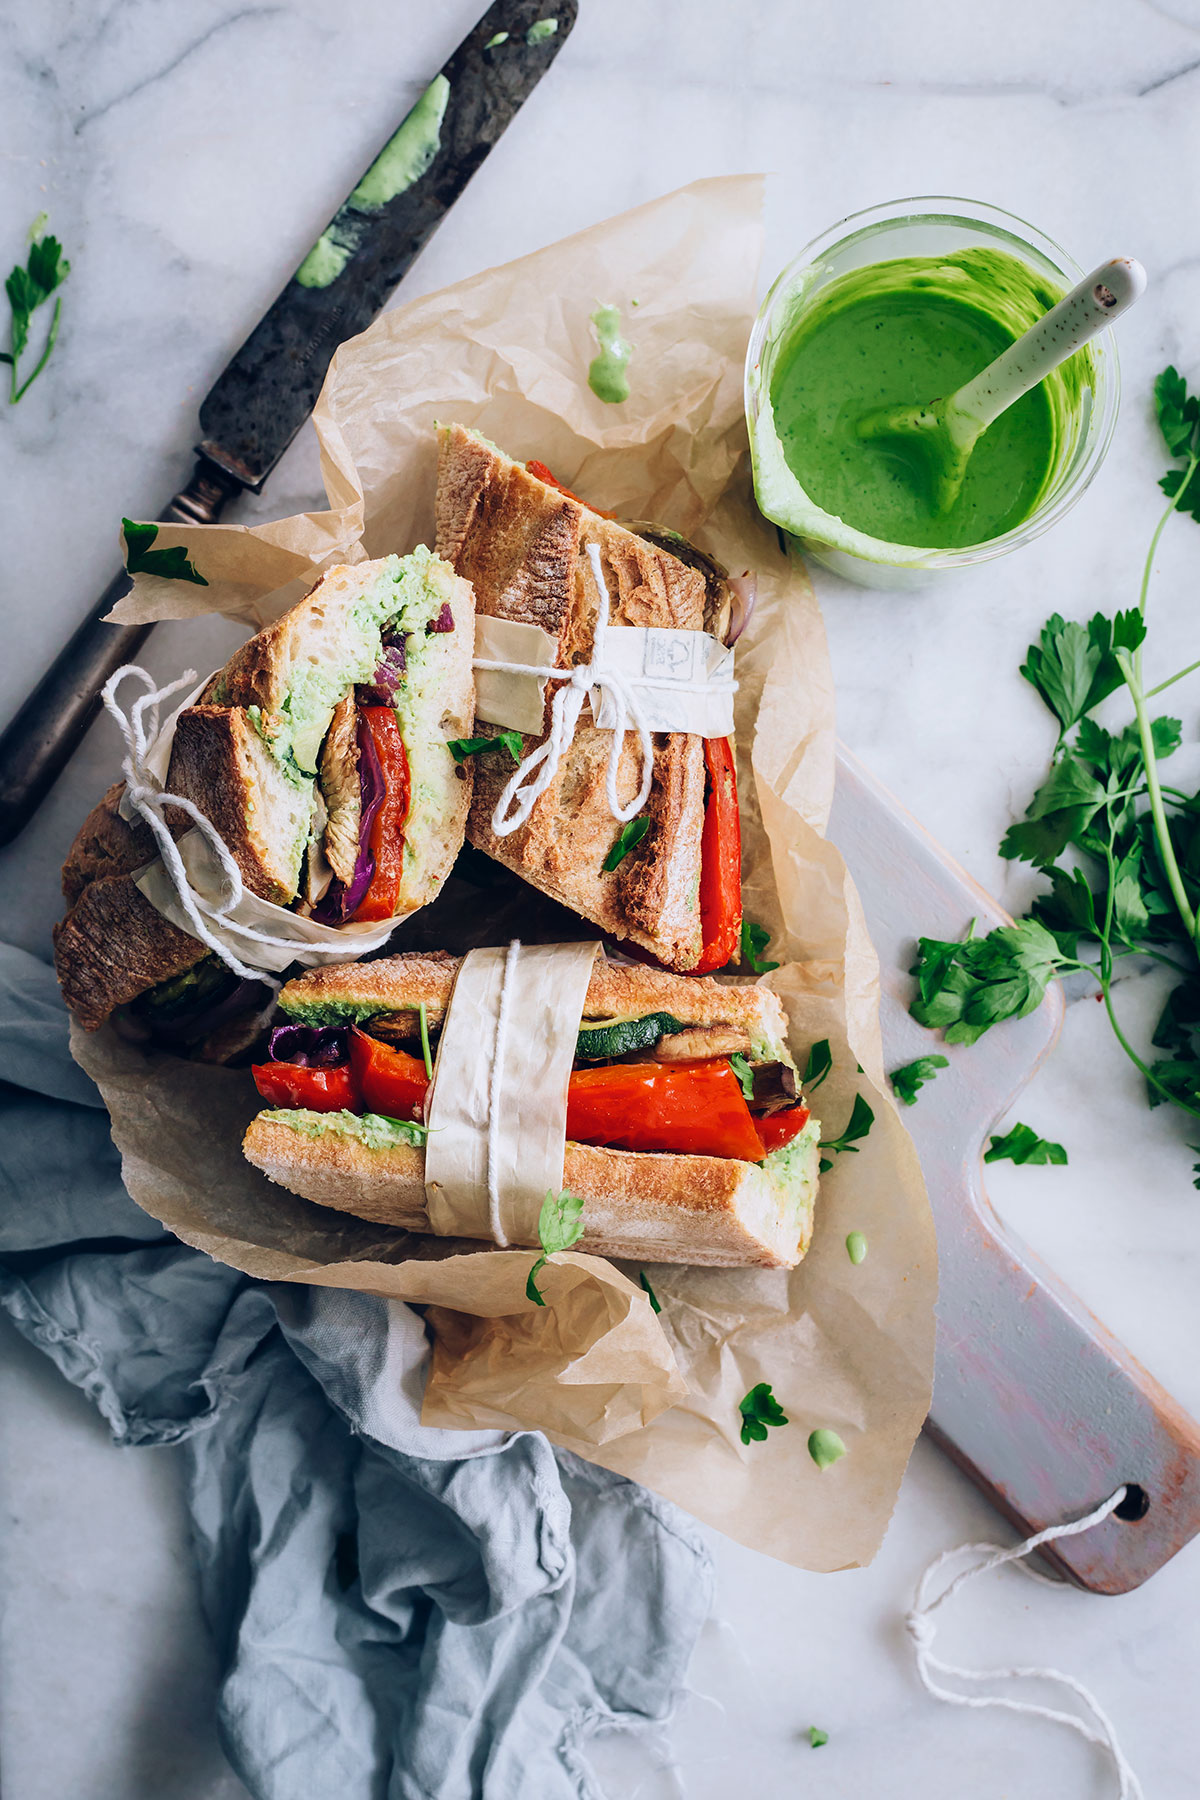 Summer Vegetable Sandwiches with Chimichurri Aioli